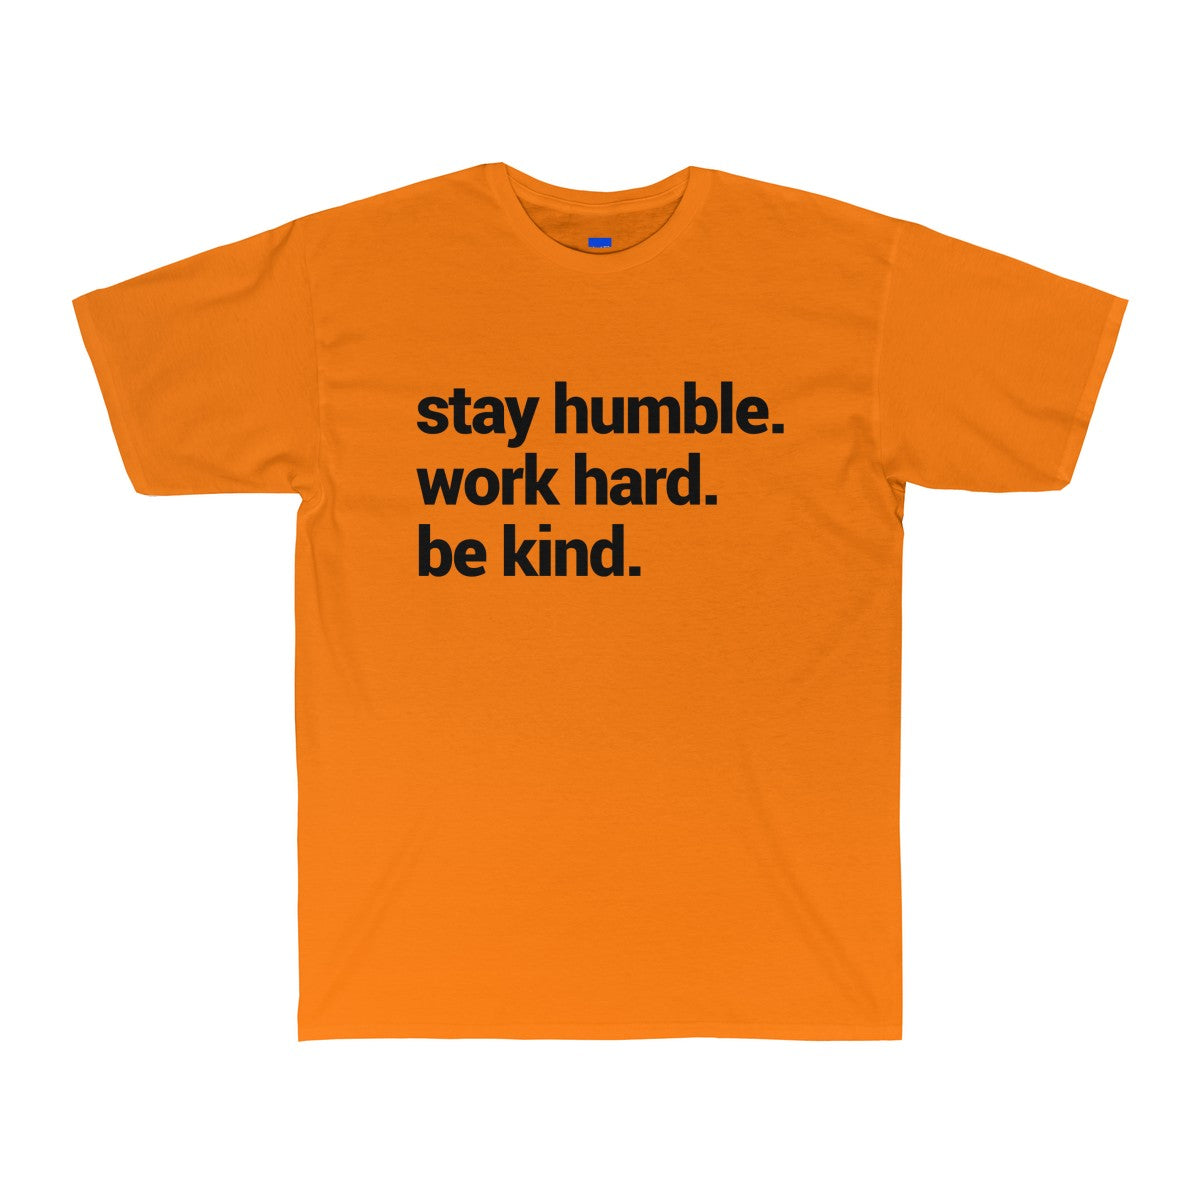 Humble-Men's fitted shirt